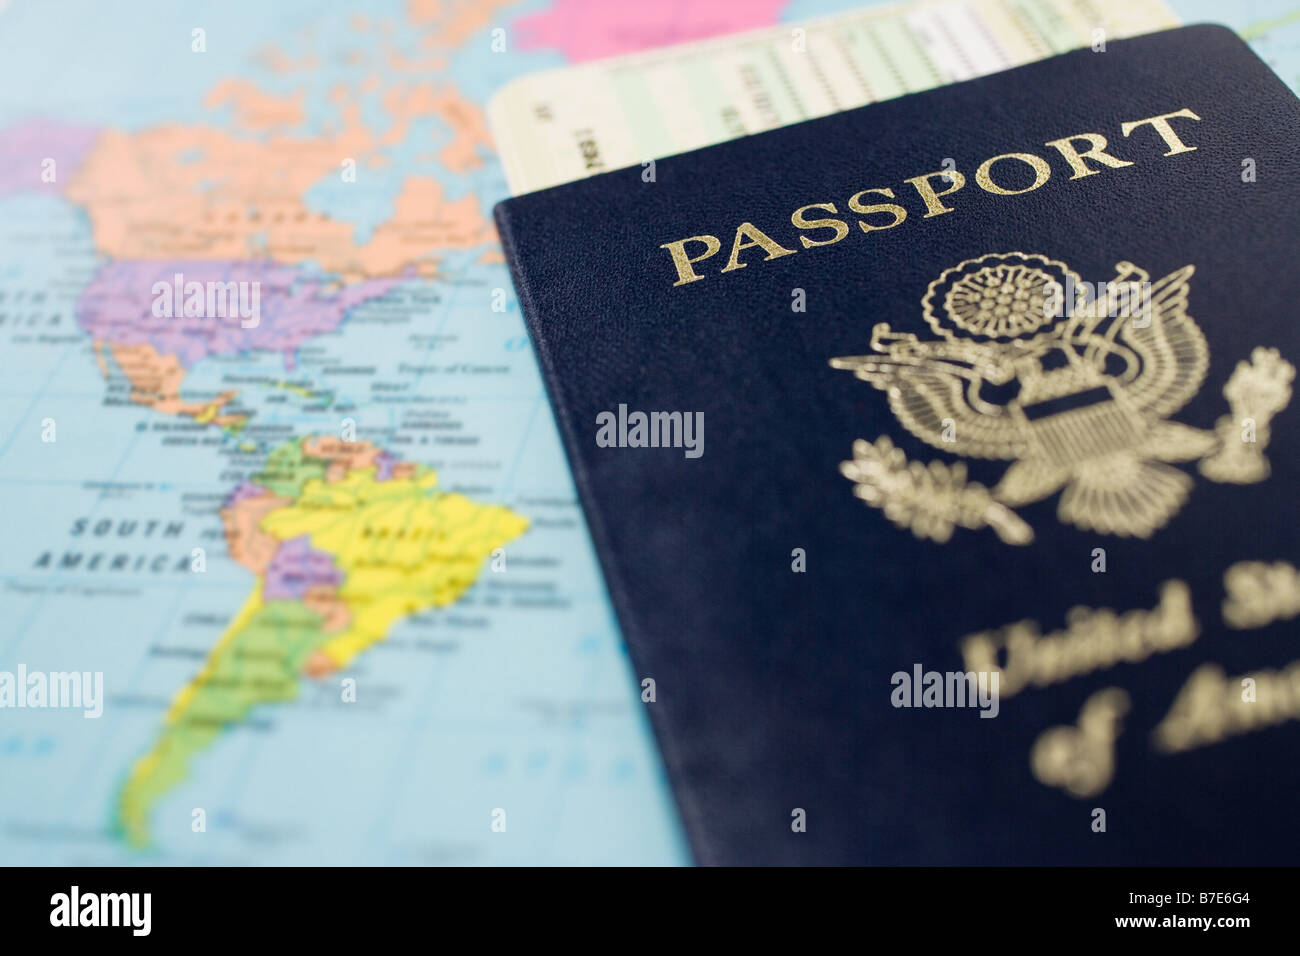 Airplane tickets passport and a map - Stock Image